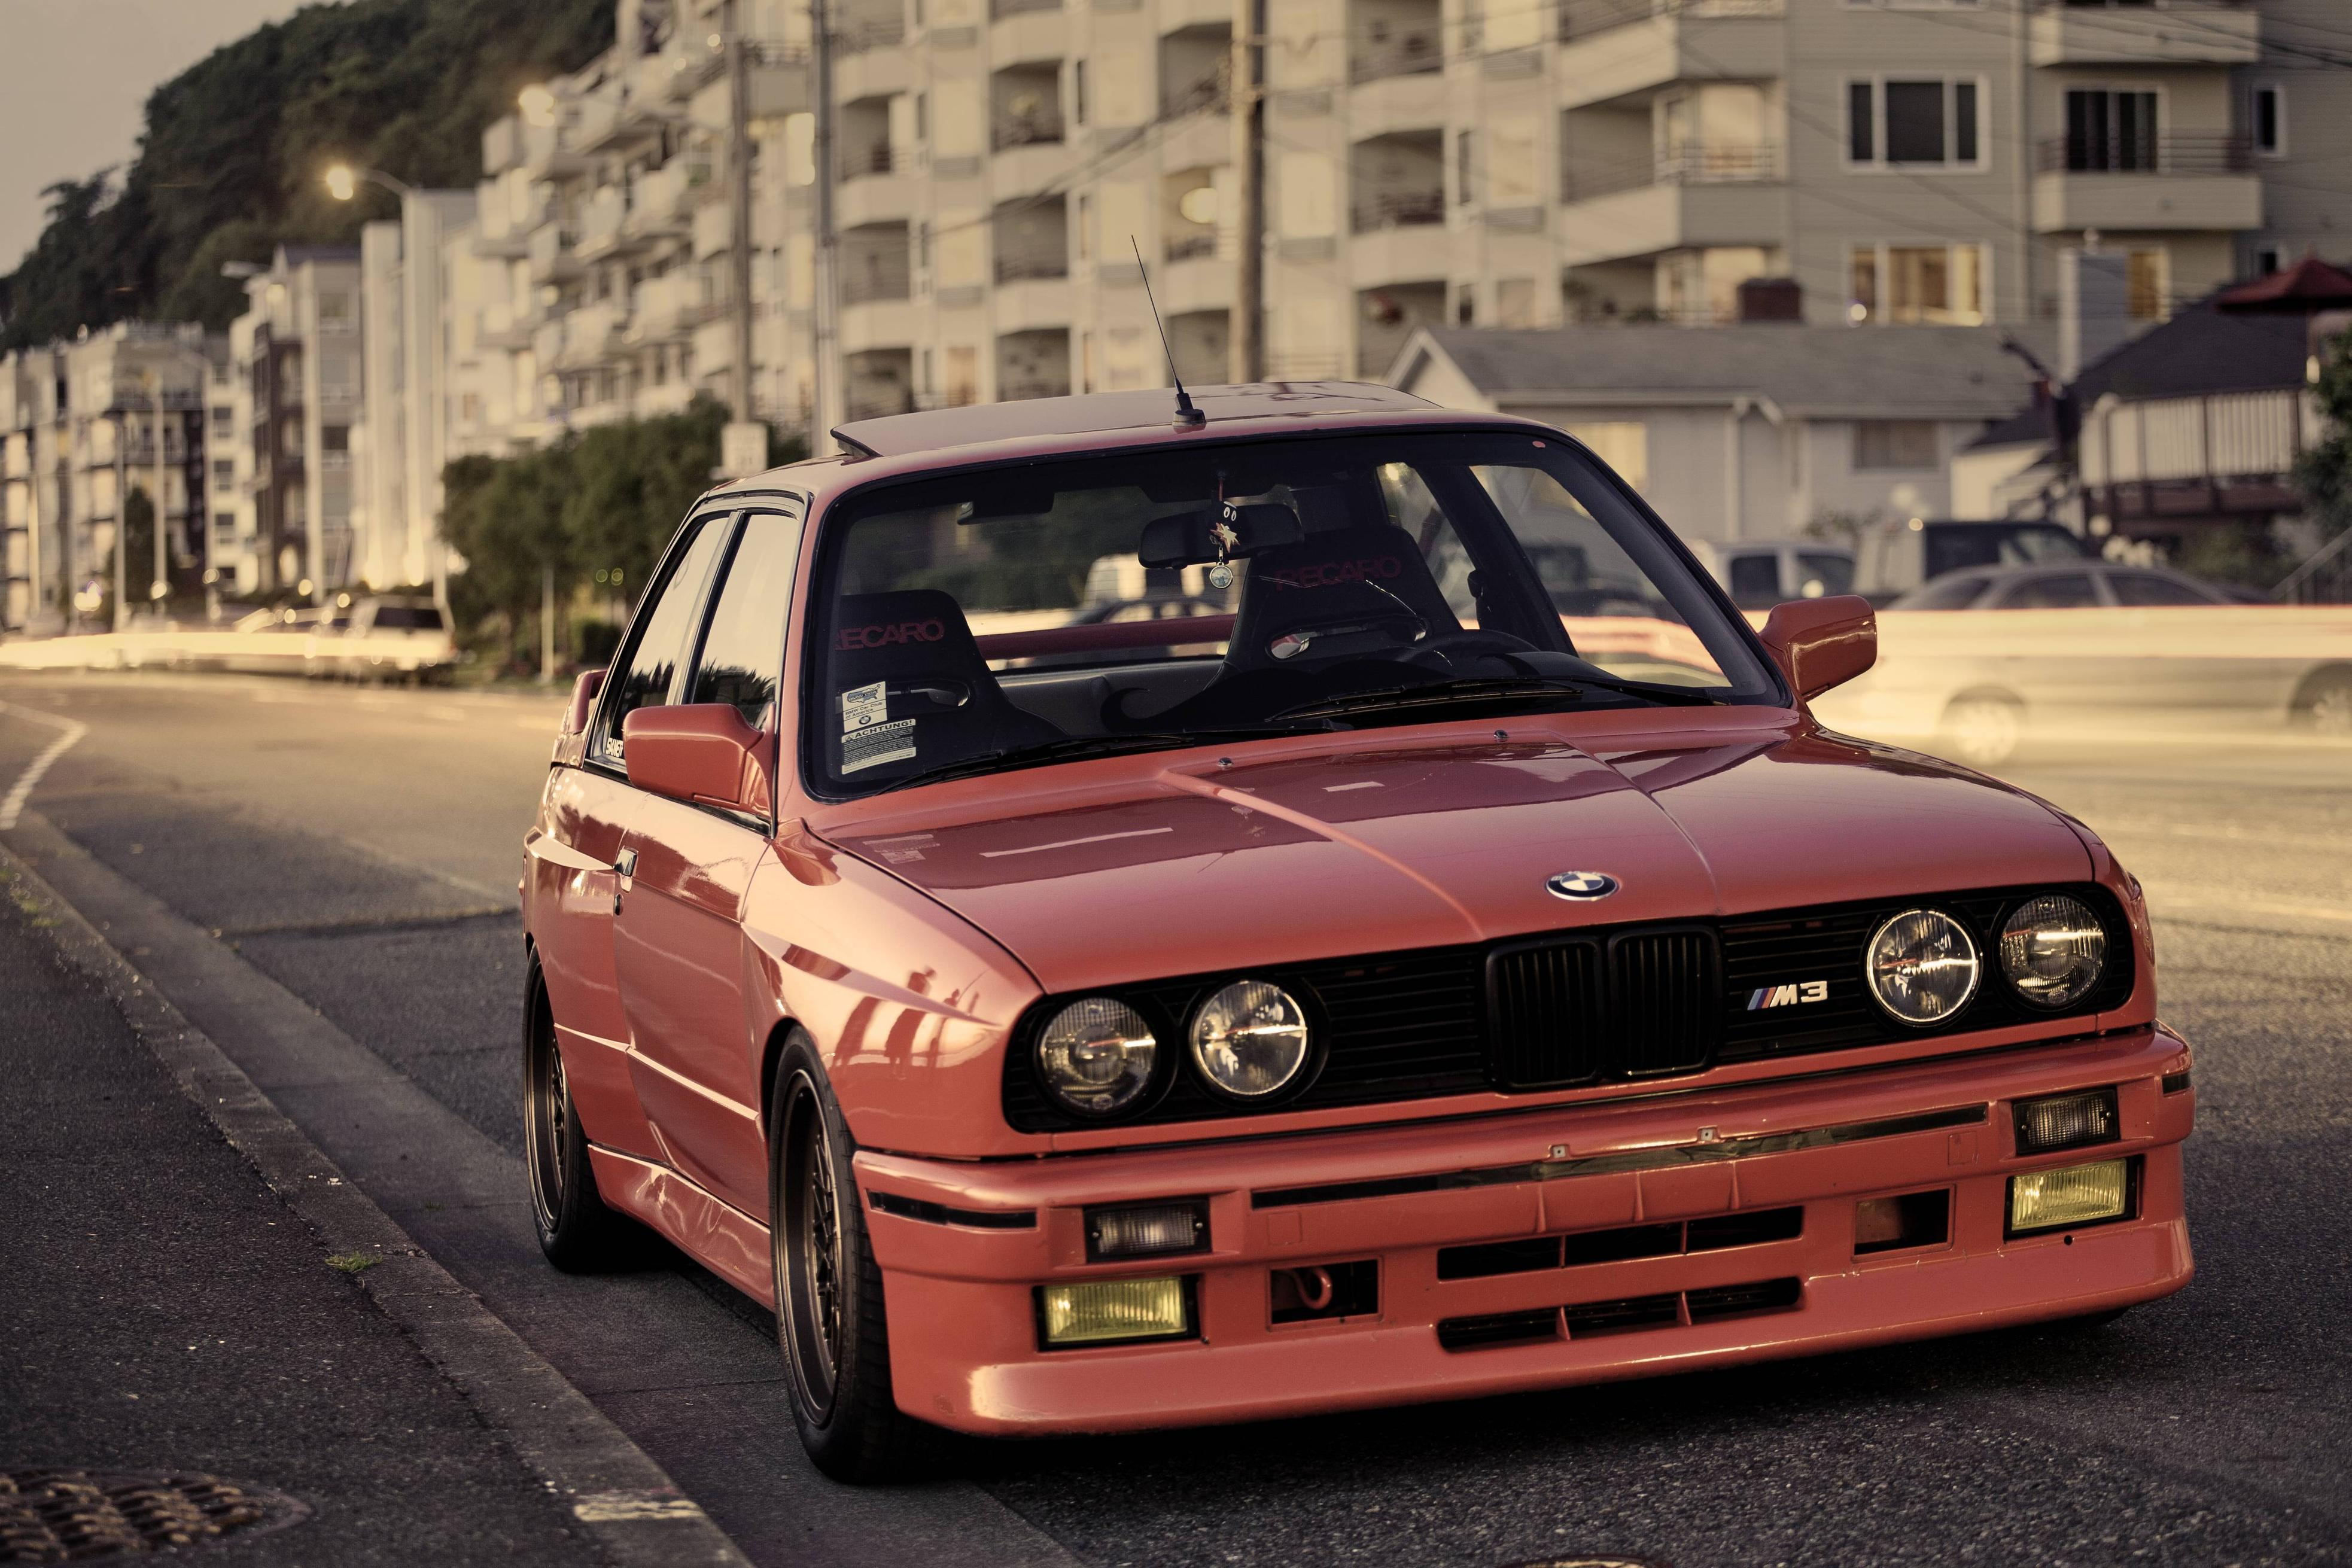 Bmw E30 Wallpapers Bmw M3 E30 331481 Hd Wallpaper Backgrounds Download